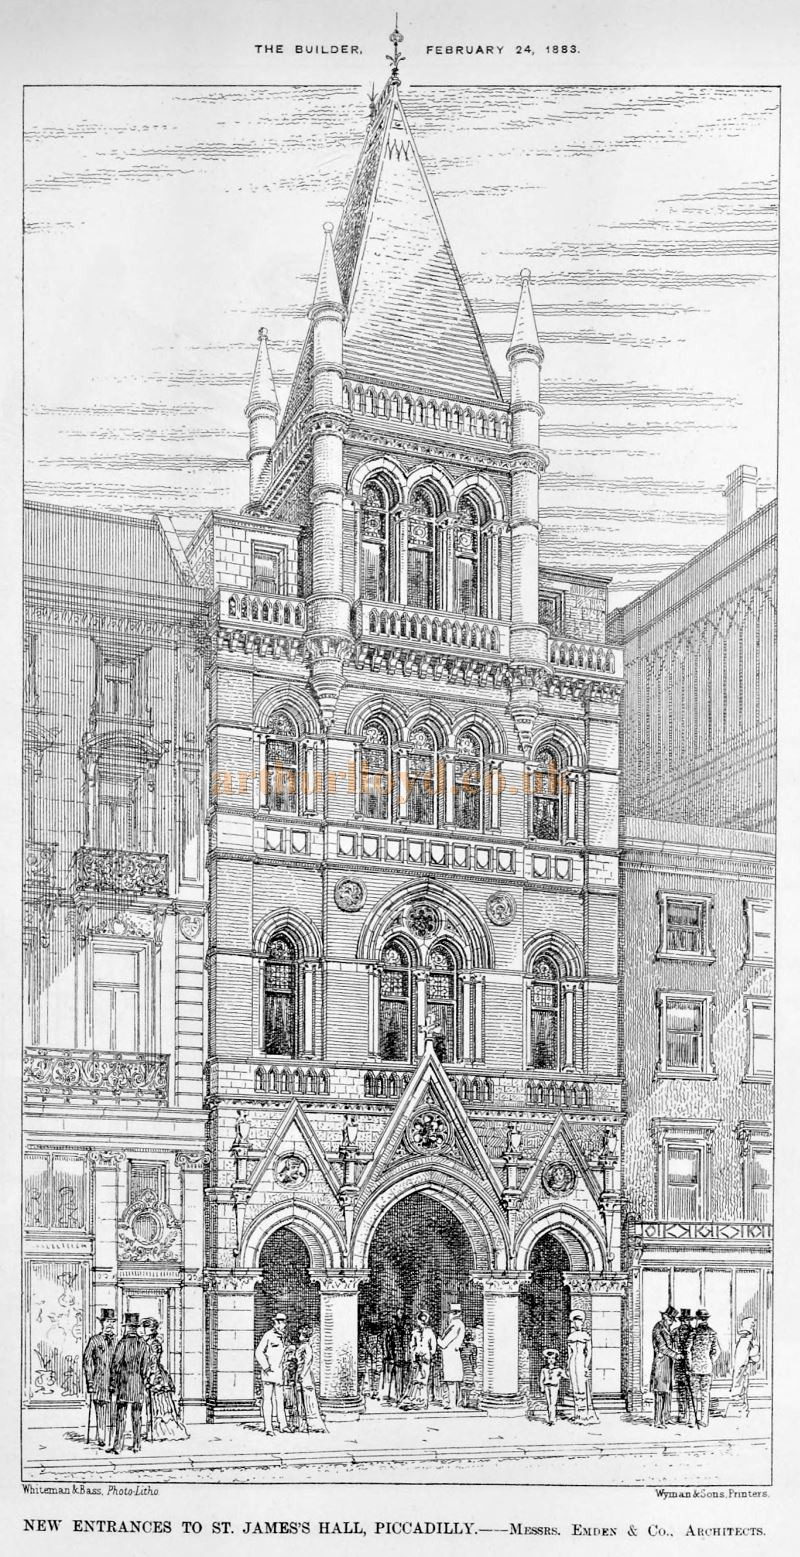 The New Entrances to St. James's Hall, Piccadilly - Messrs. Emden & Co., Architects - From the Builder, February 24th 1883.